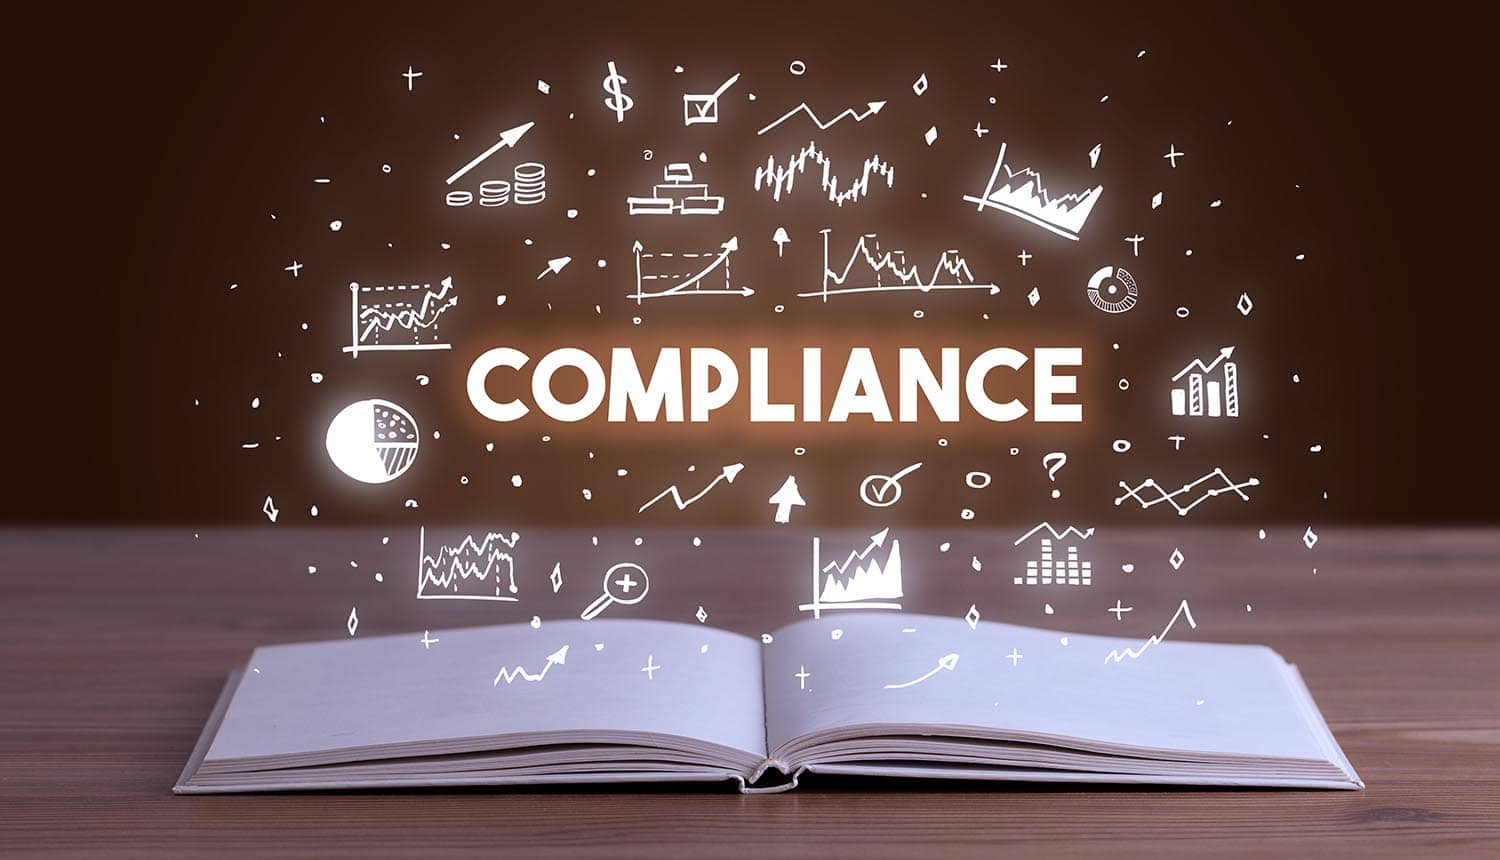 Compliance icon on top of a book showing the technology considerations for CCPA compliance